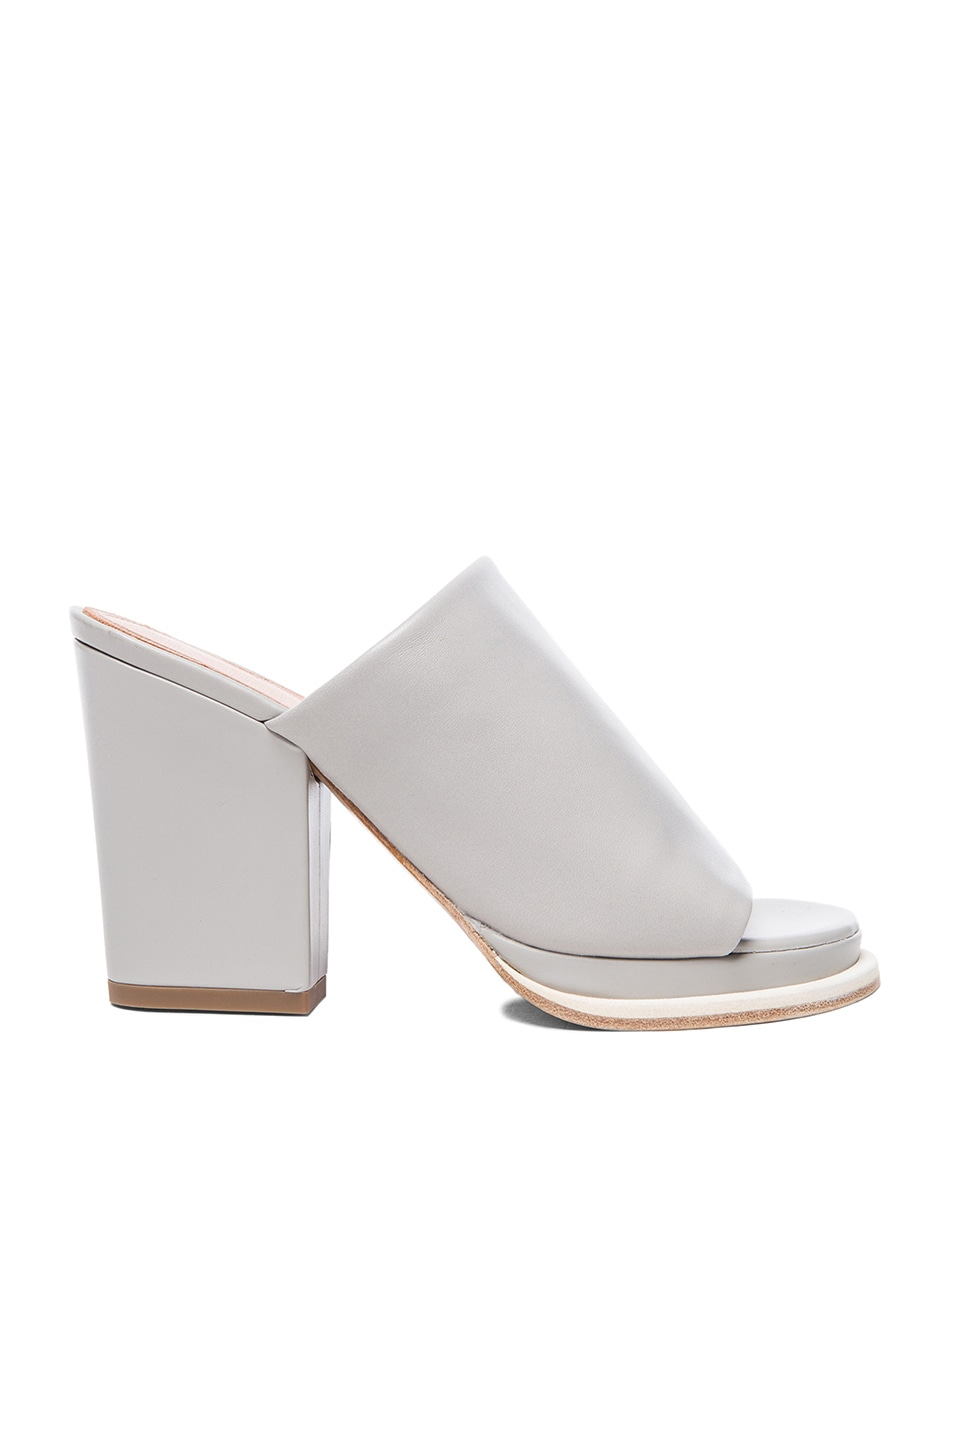 Image 1 of Robert Clergerie Astro Chunky Heel Leather Sandals in Grey